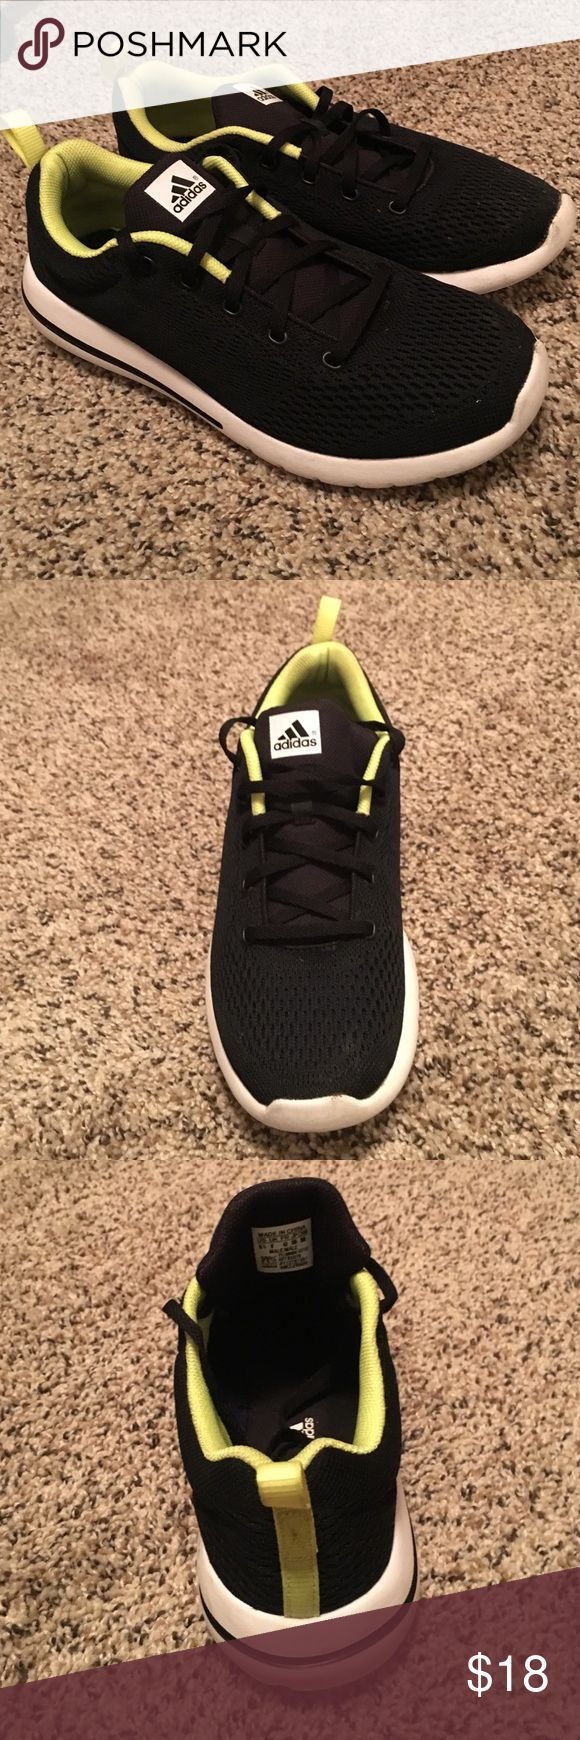 Adidas Adiprene | Black and Green | Size 8.5 These are super light running shoes. These shoe have a really hard to notice design but it has the 3 adidas stripes on the sides of the shoes. Adidas Shoes Athletic Shoes